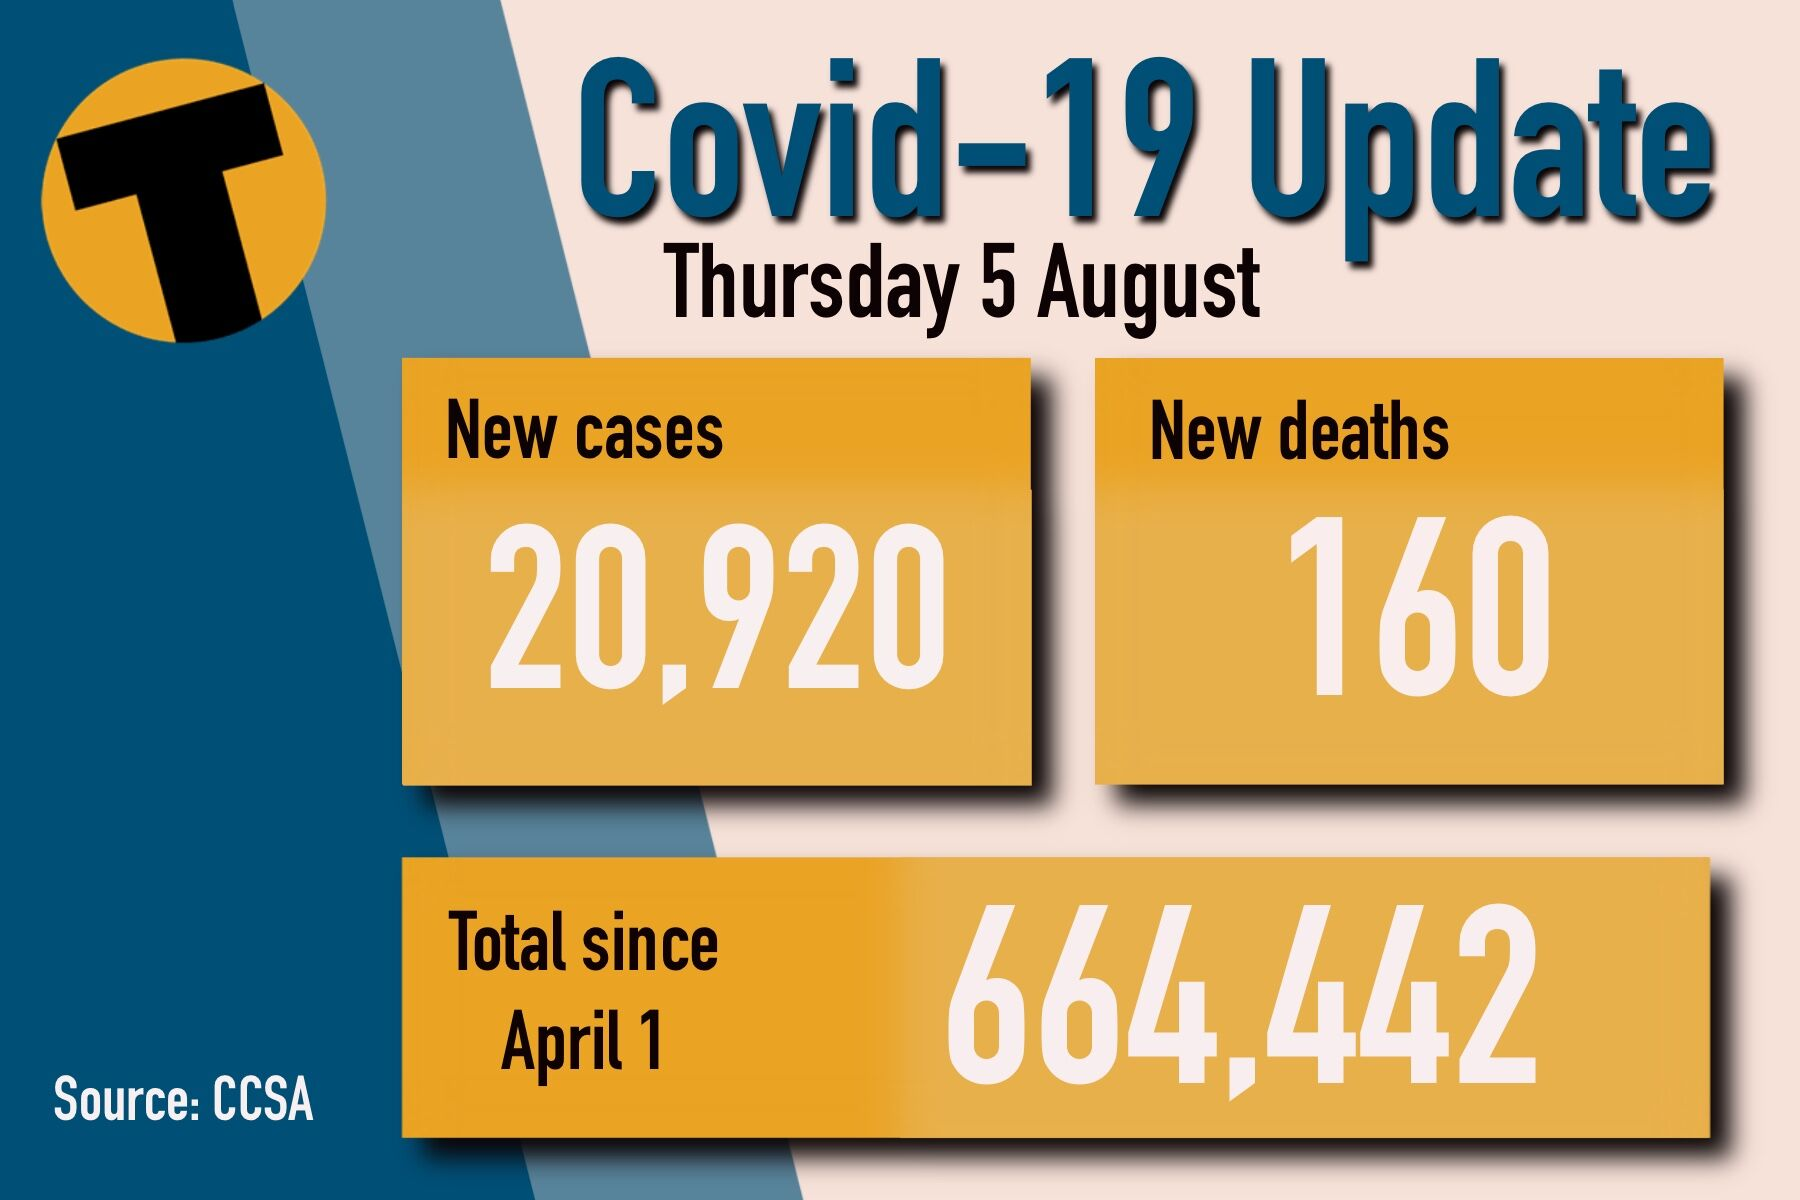 Thursday Covid Update: High of 20,920 new cases and 160 deaths | News by Thaiger